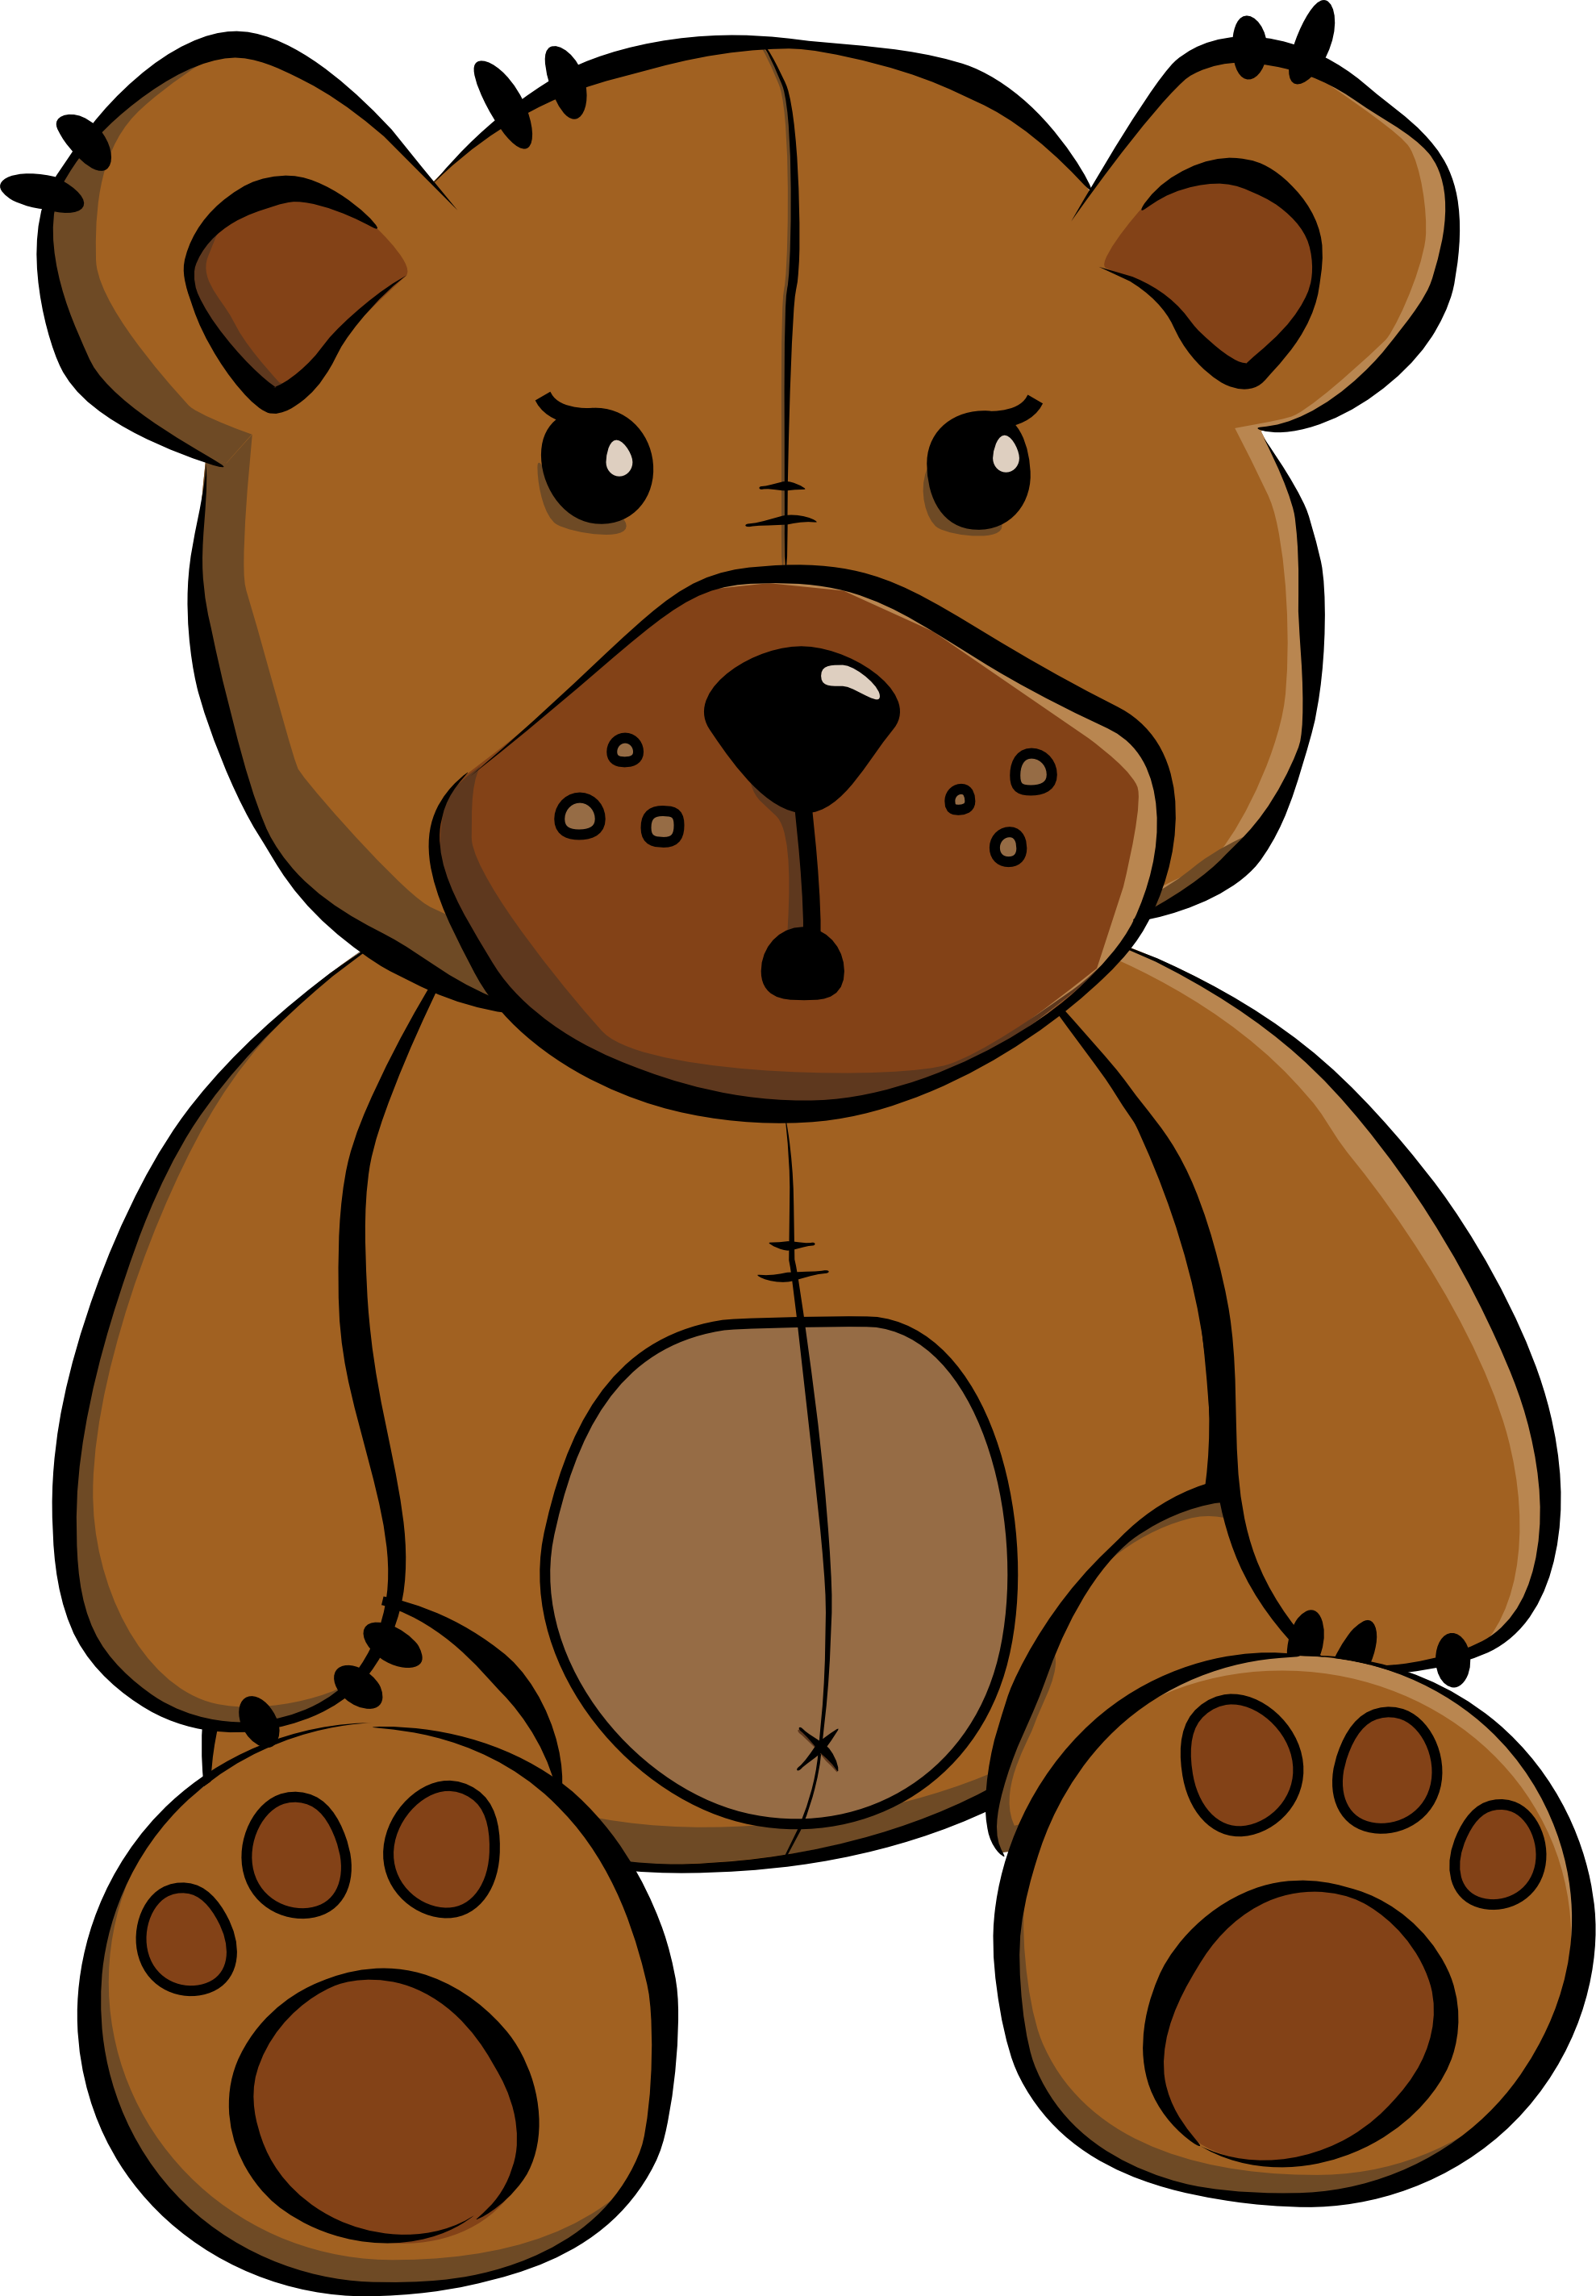 Teddy bear clipart png. Little at getdrawings com